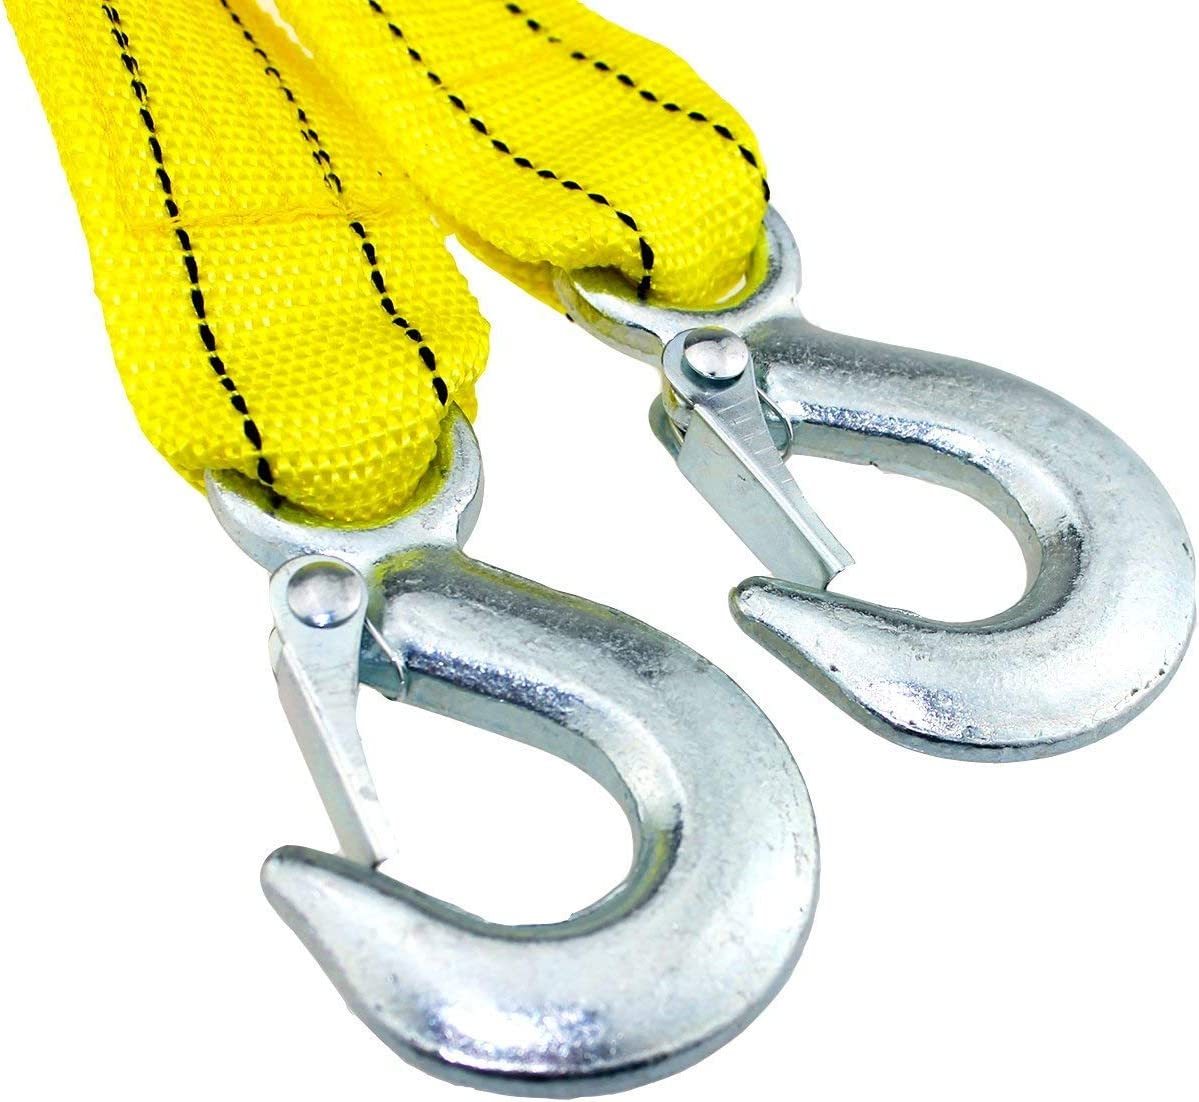 FixtureDisplays Heavy Duty Tow Strap with Safety Hooks 10,000 LB Capacity 18803 2 x 13